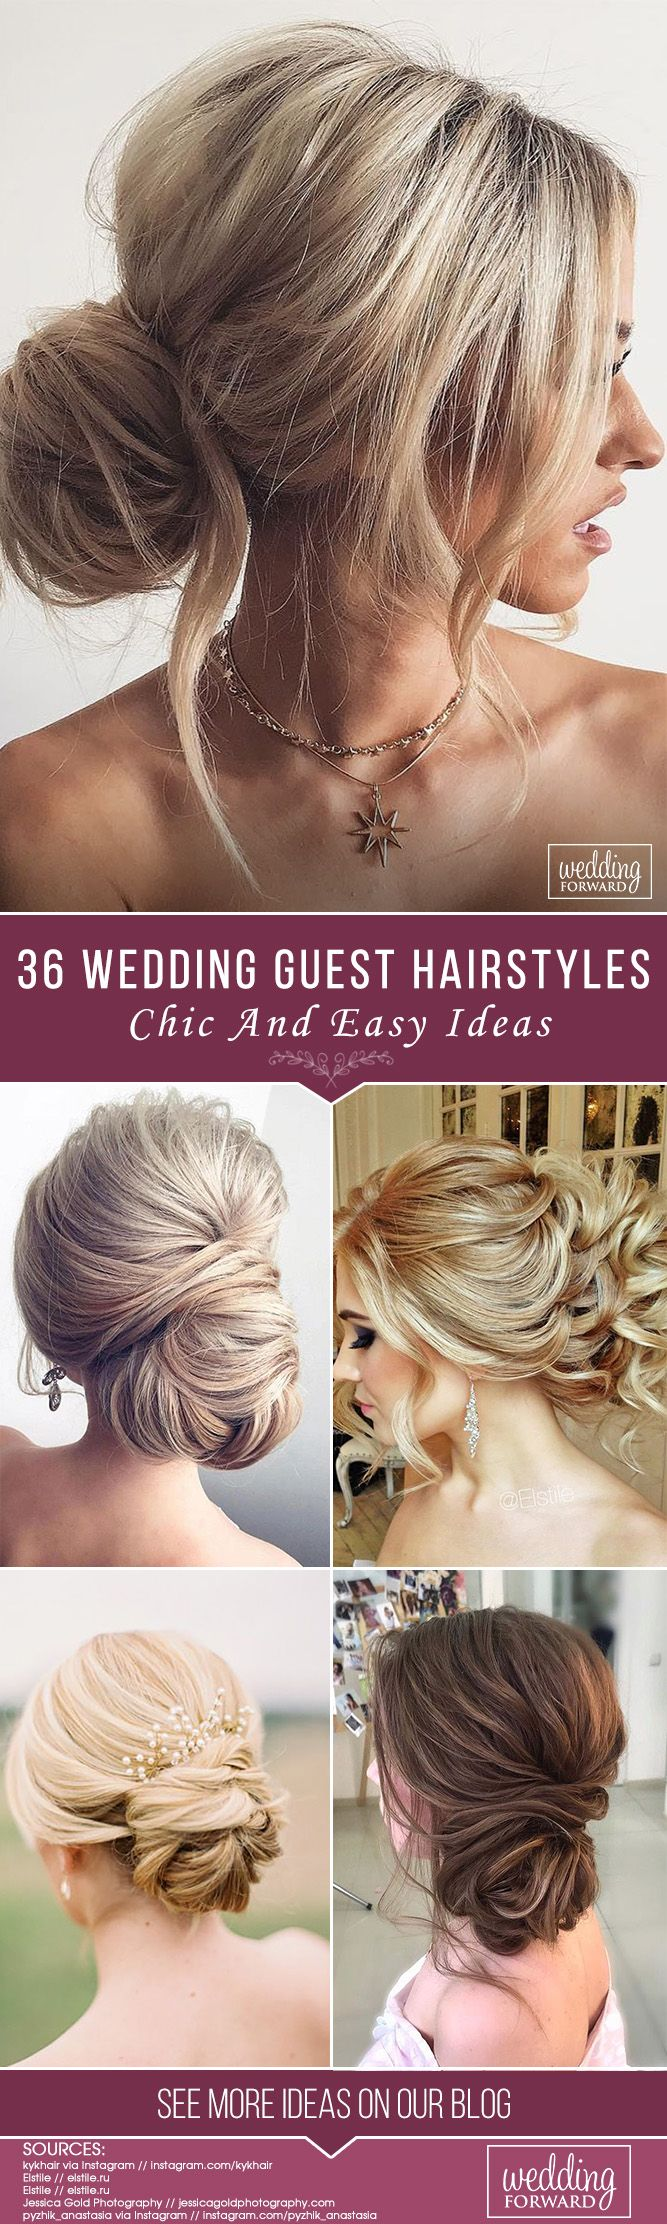 36 Chic And Easy Wedding Guest Hairstyles ❤ Wedding guest hairstyles should be...